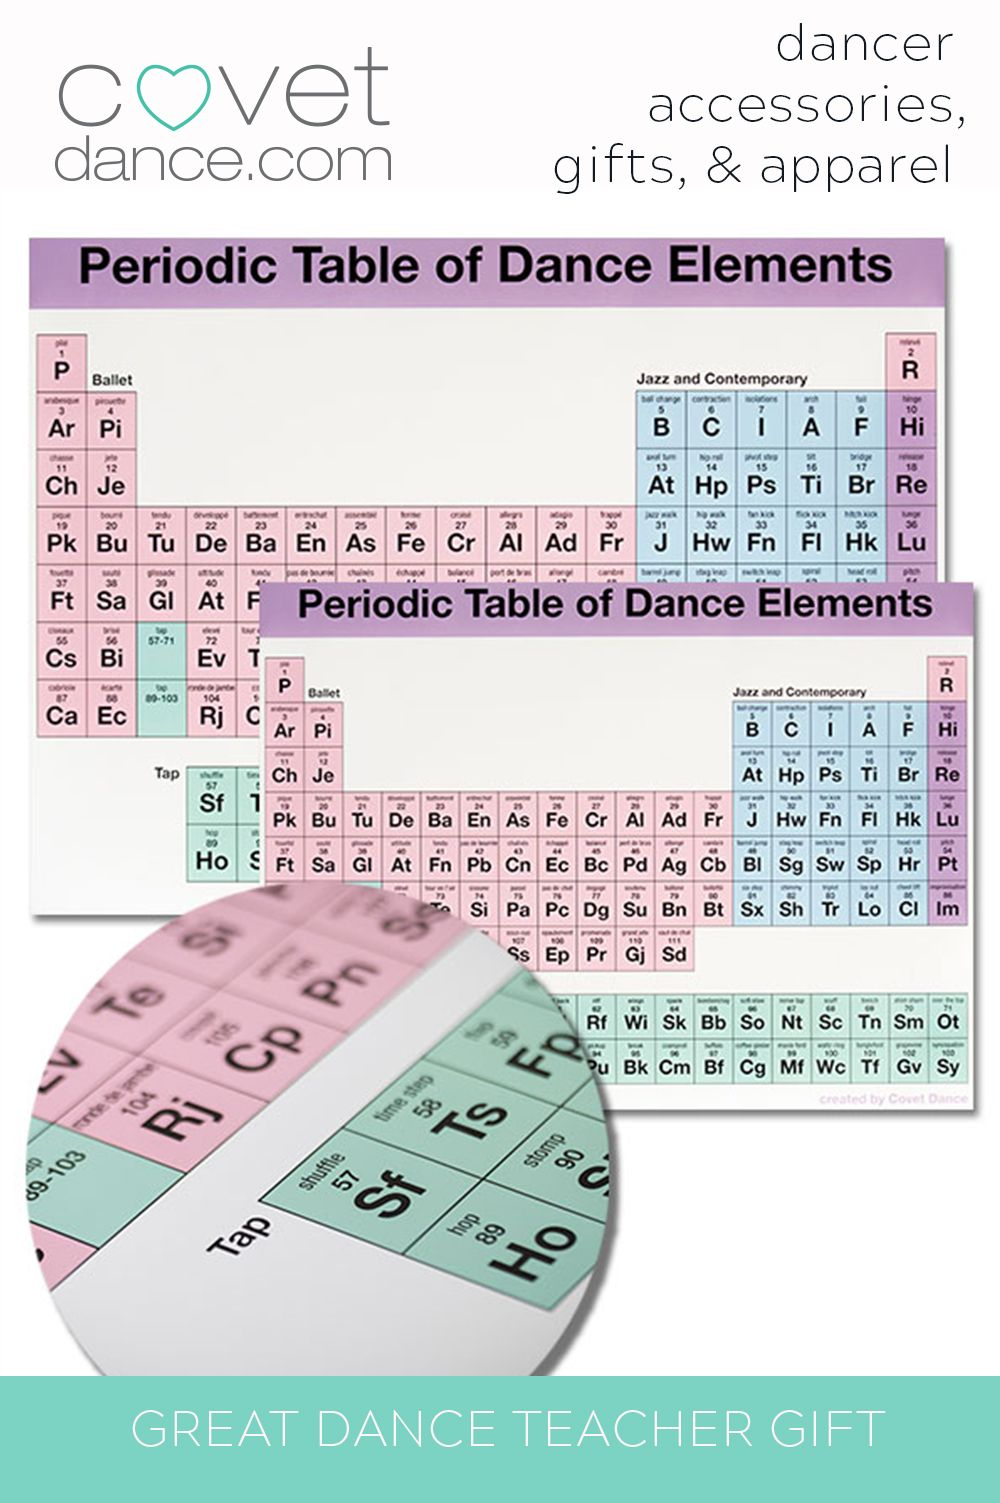 Periodic Table of Dance Elements Poster in 2020 Dance